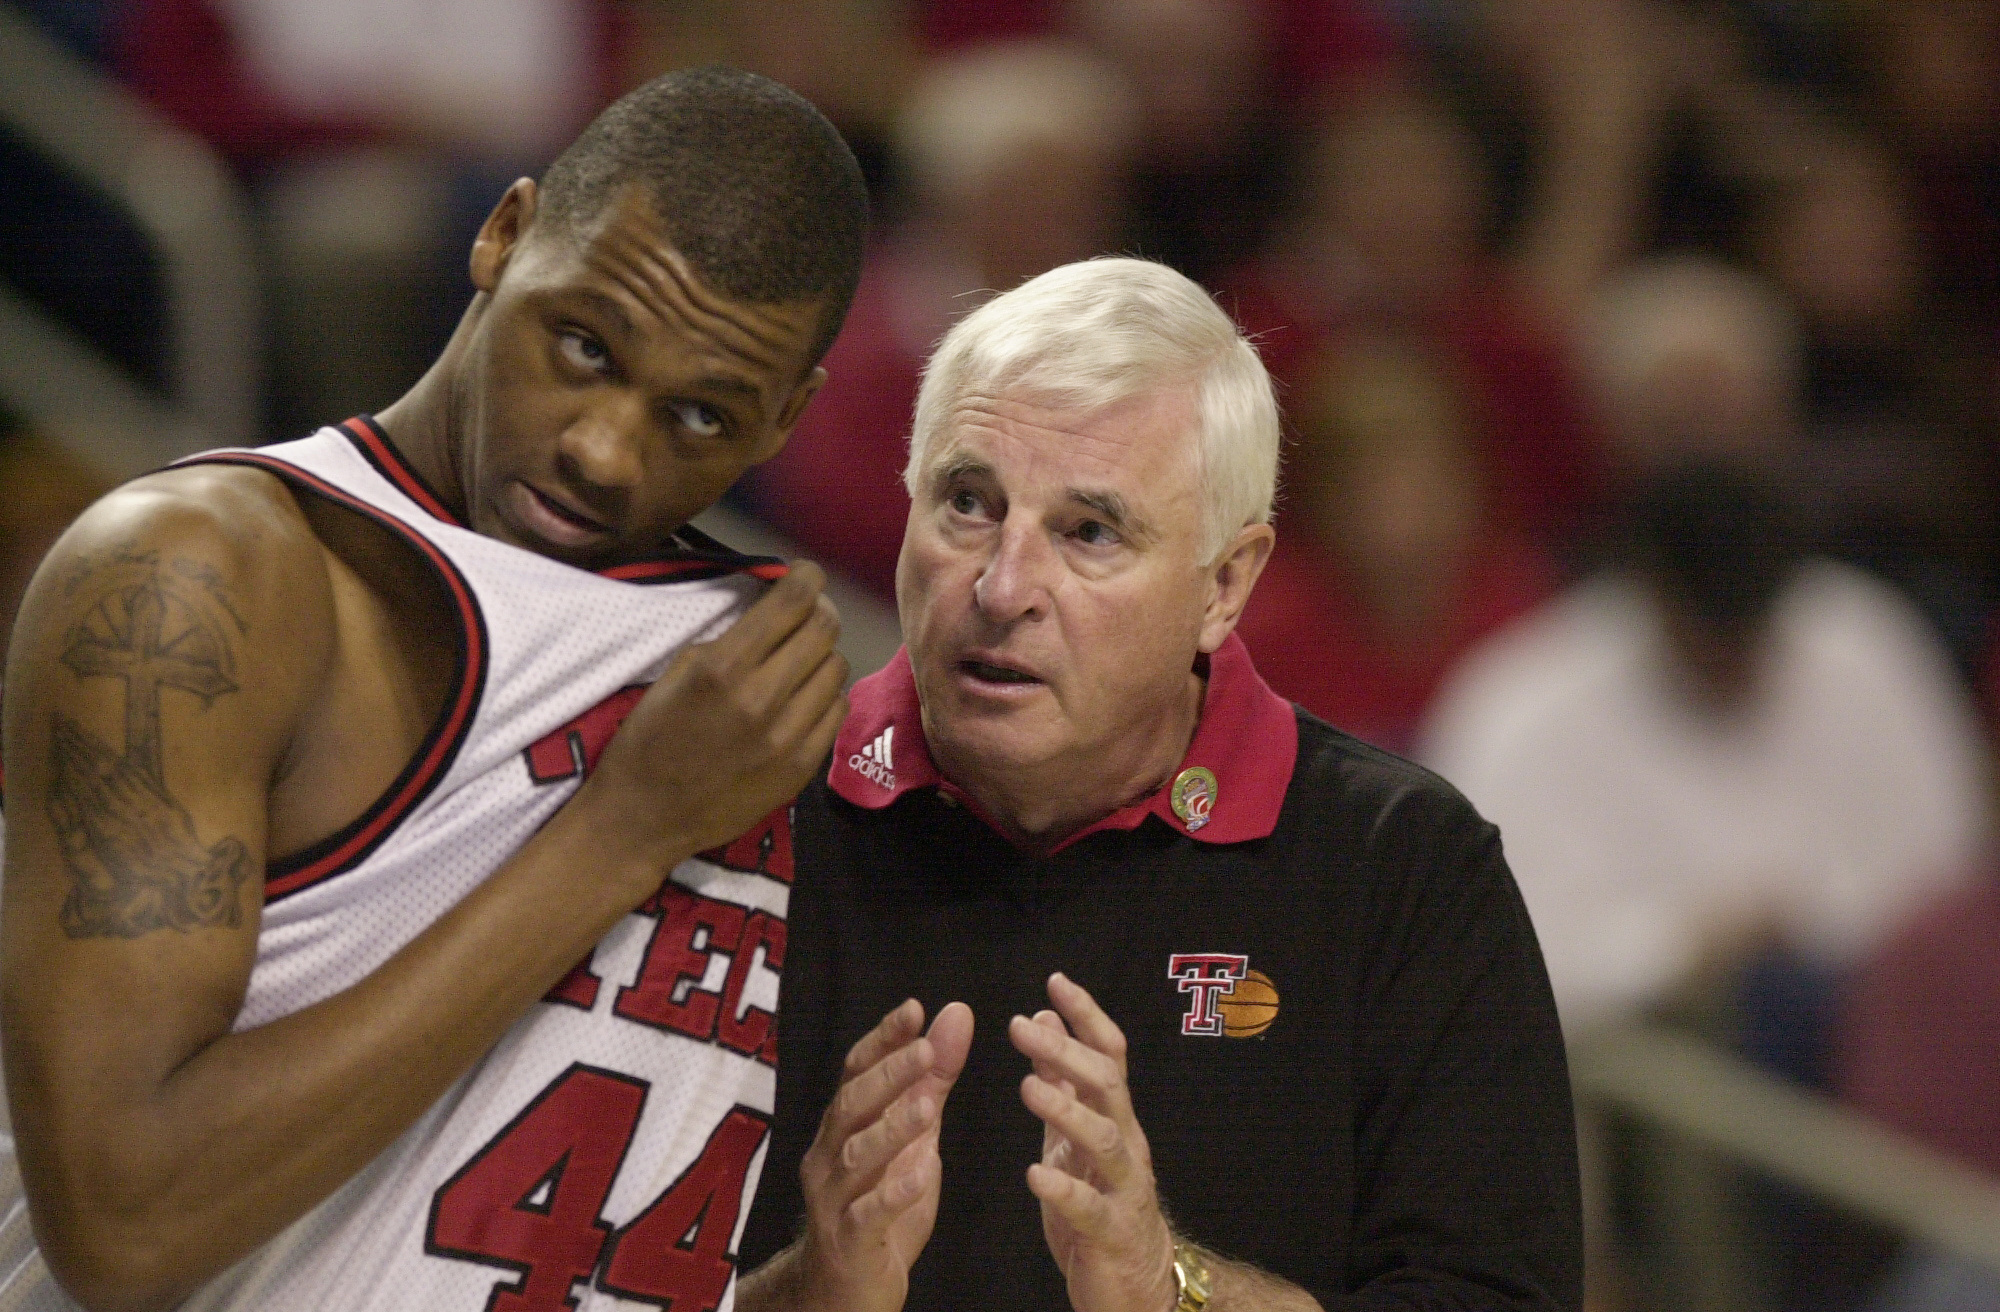 Texas Tech coach Bobby Knight gives instruction to Darryl Dora. (James P. McCoy/Buffalo News)